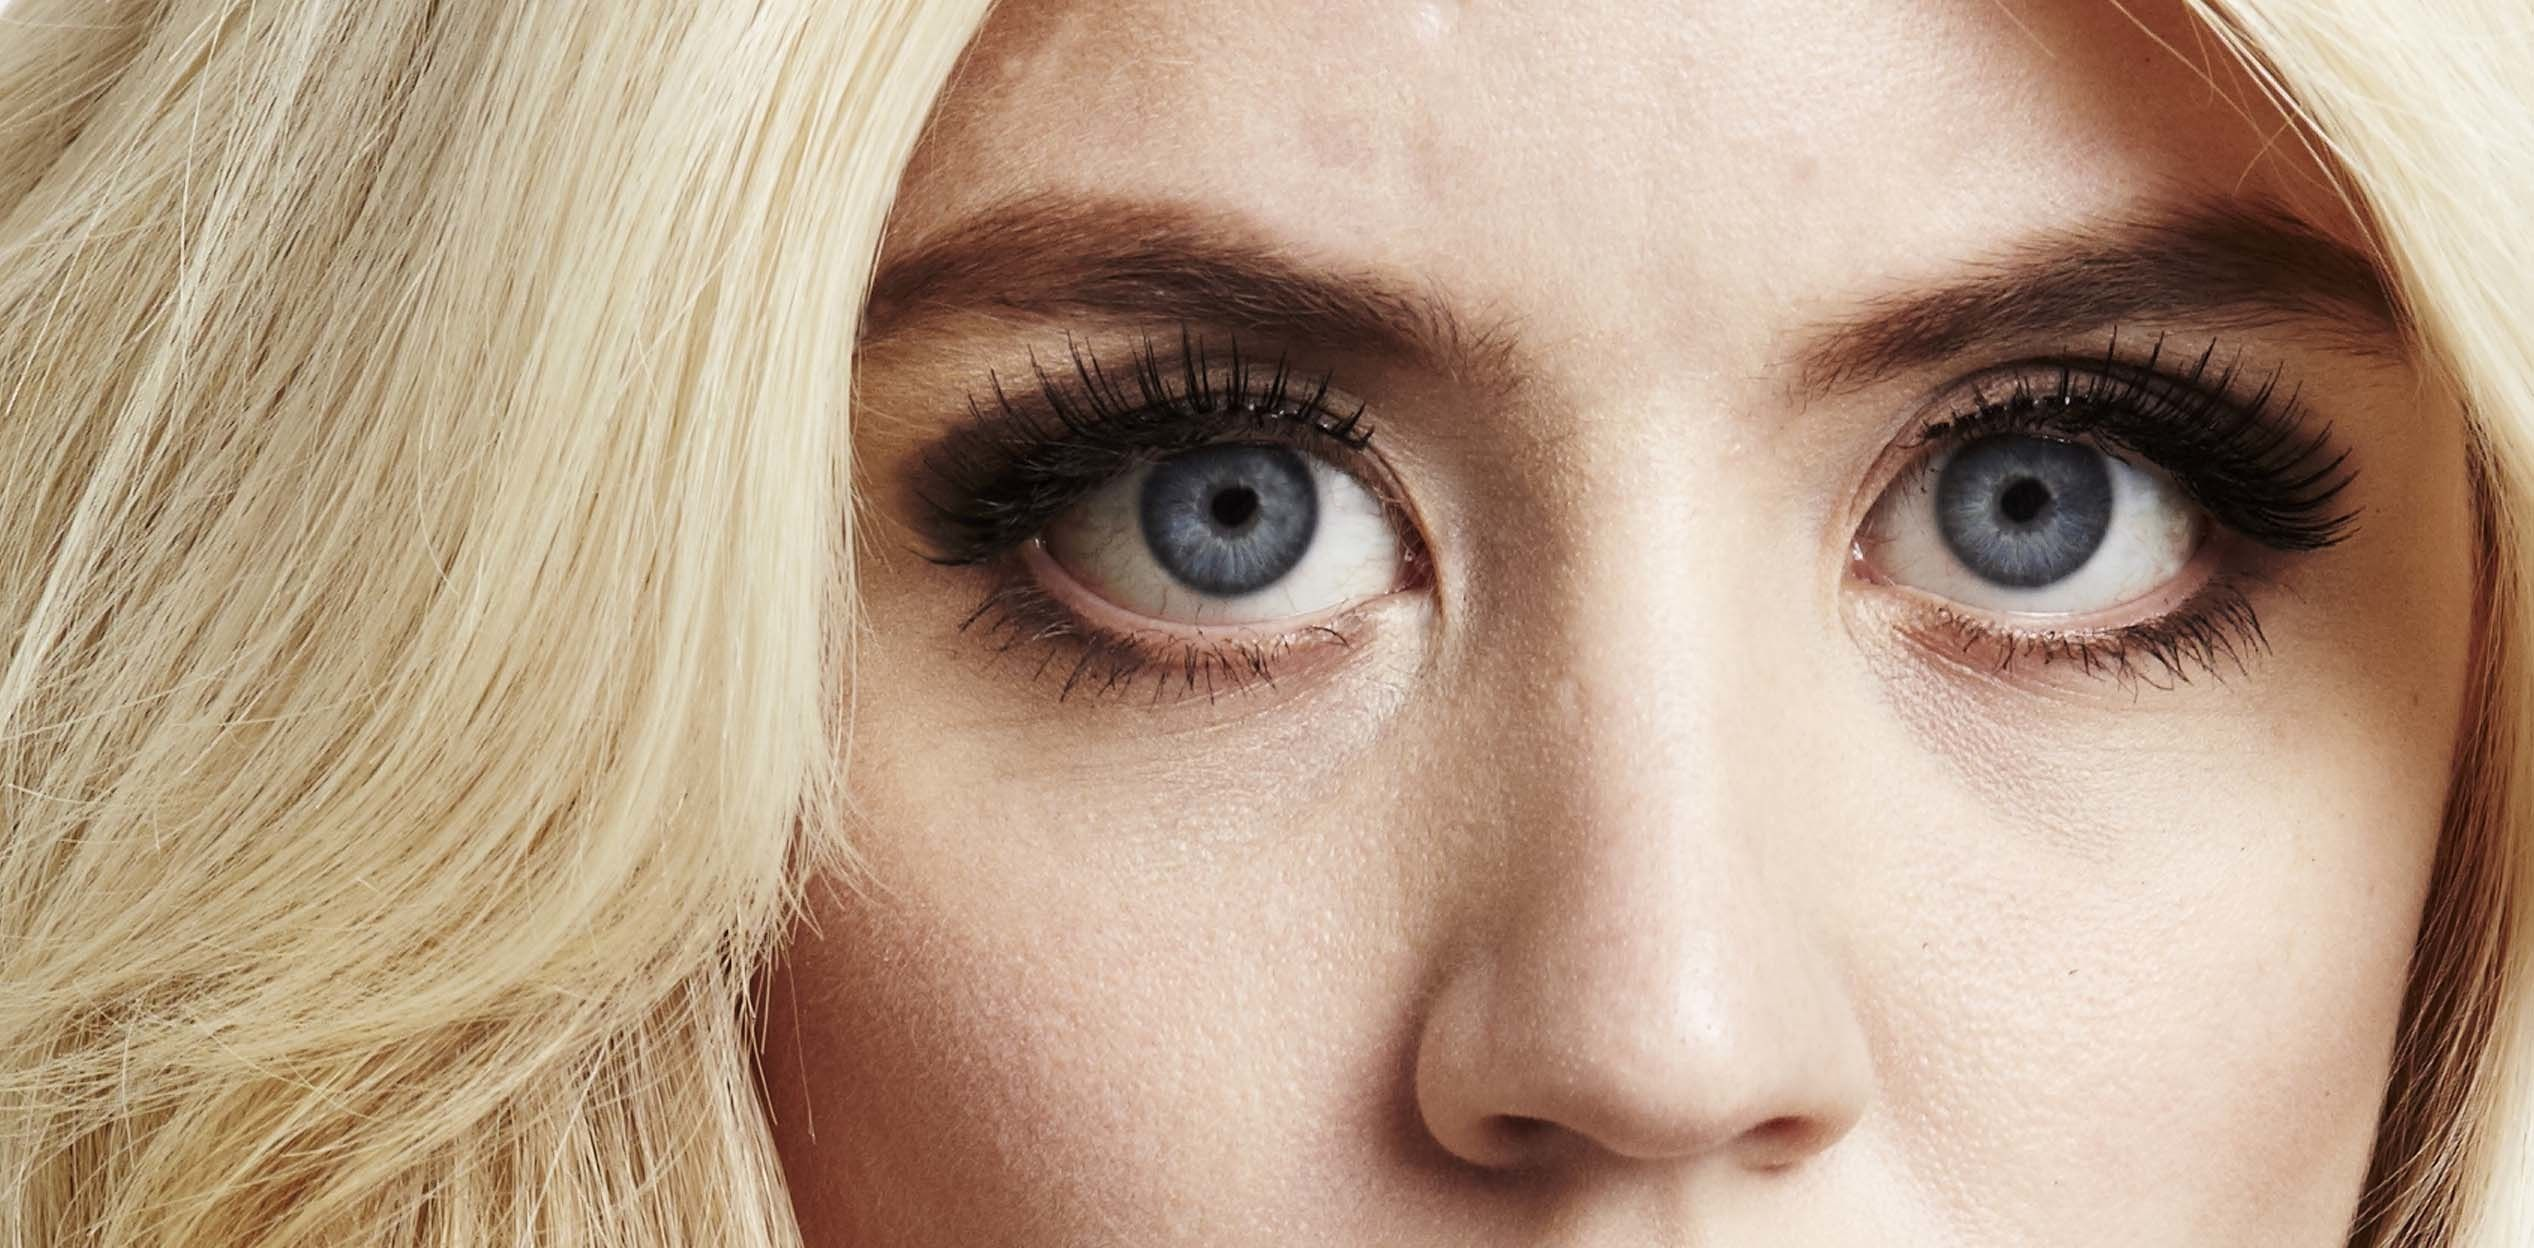 allison harvard interview